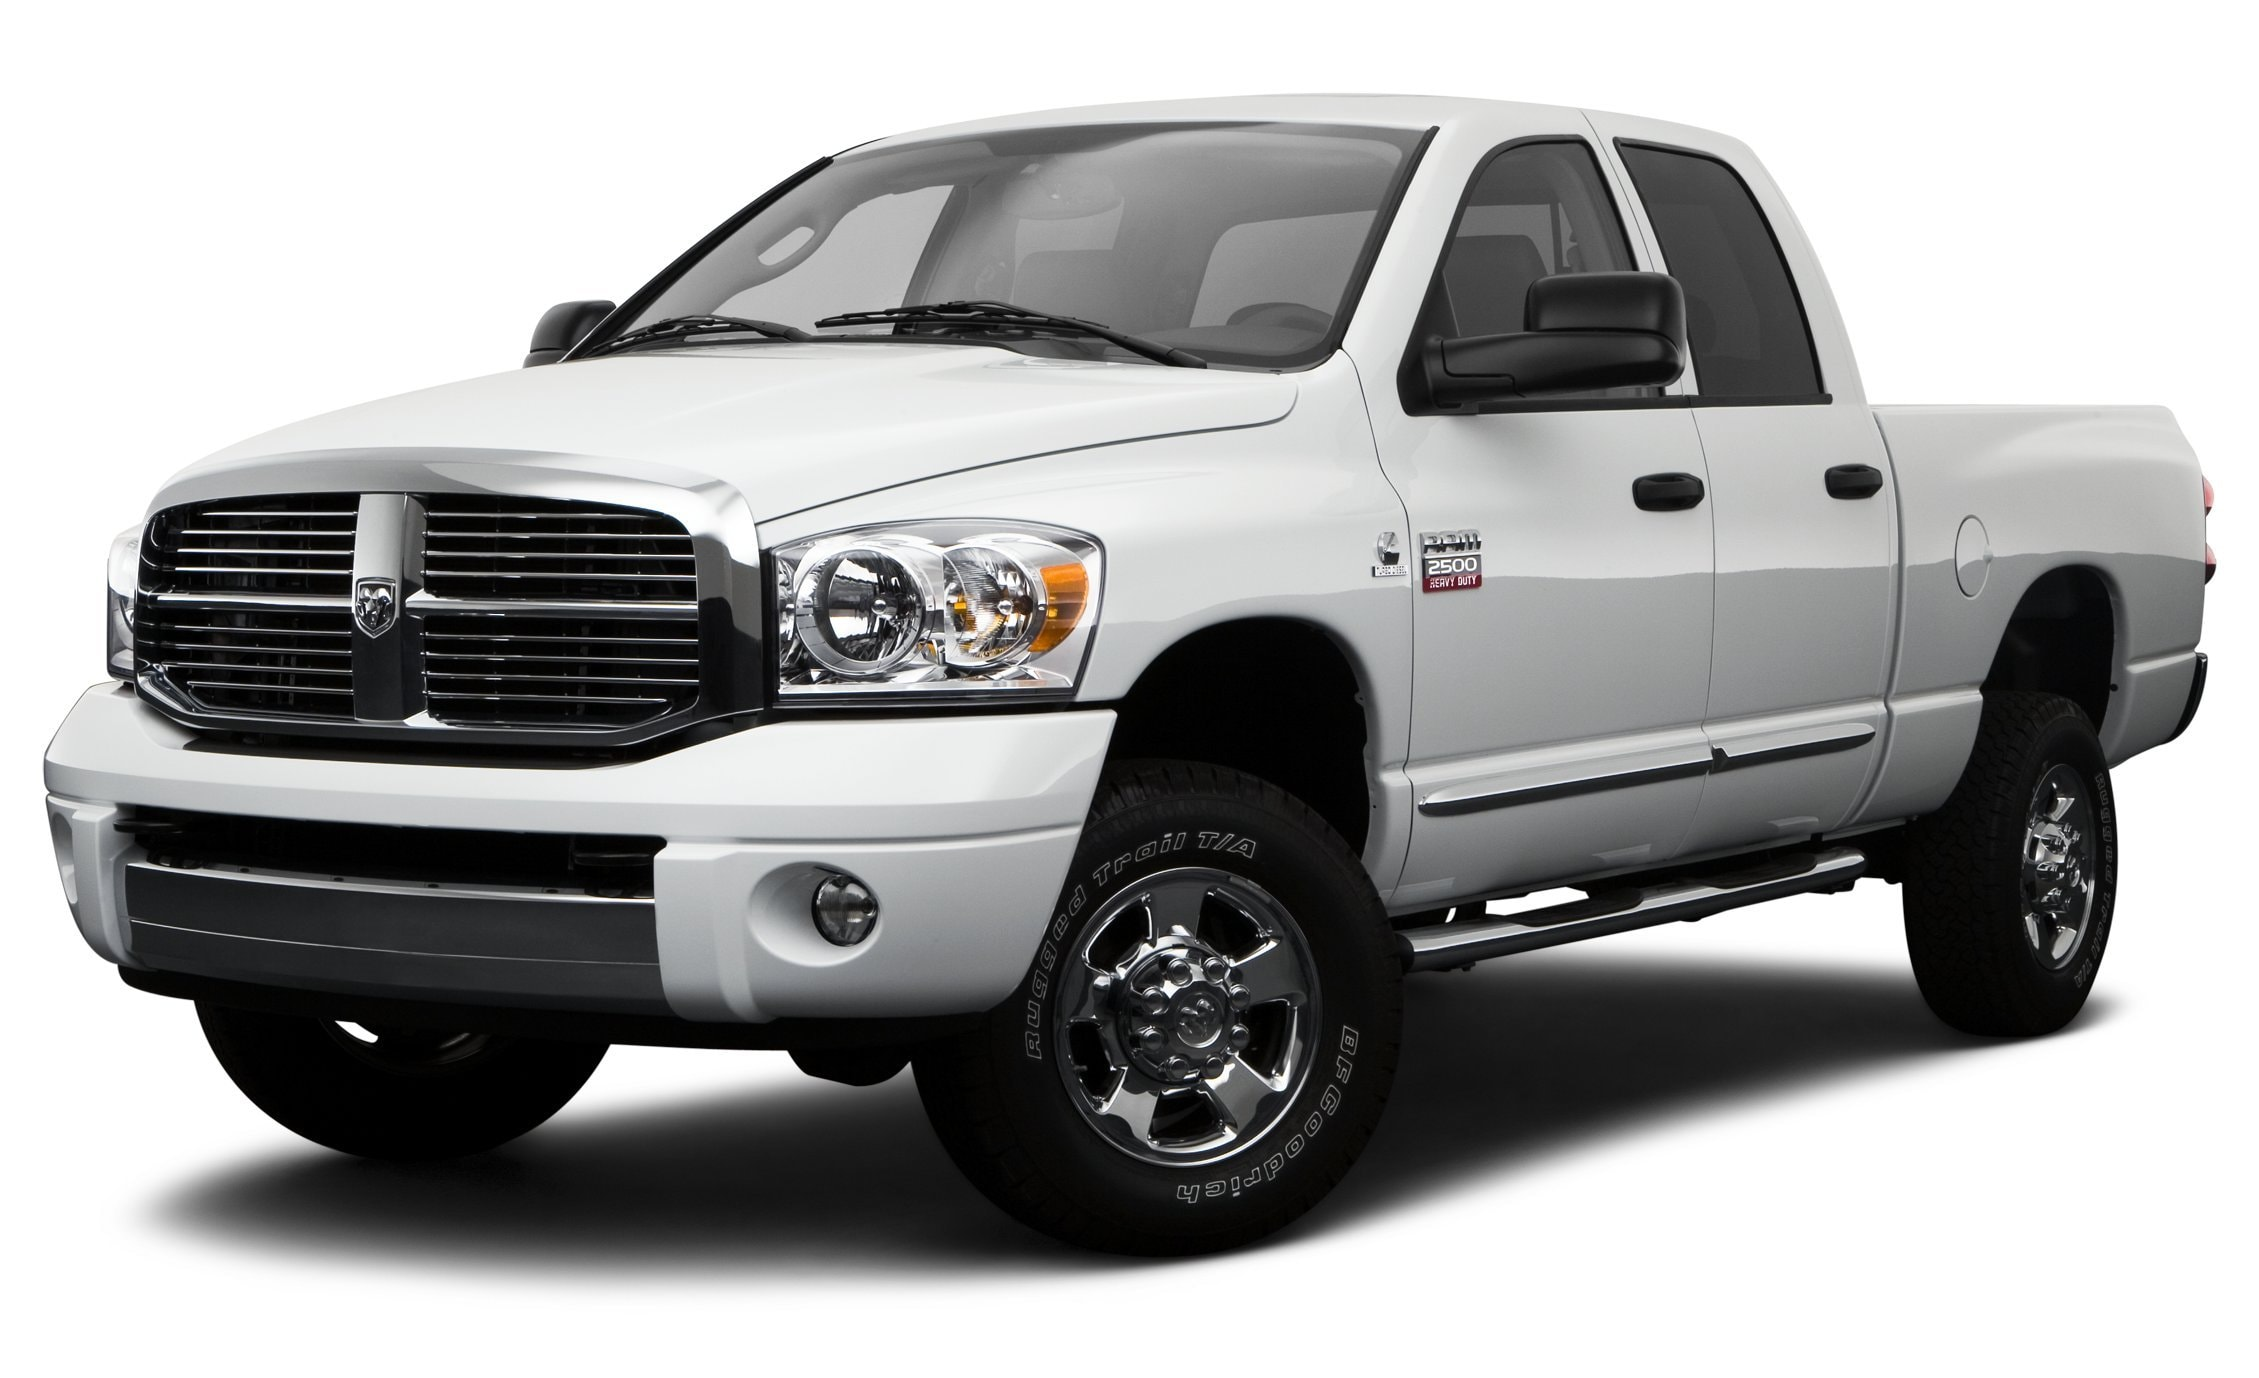 2002 - 2008 Dodge RAM 1500 Best Used Truck Under 10000